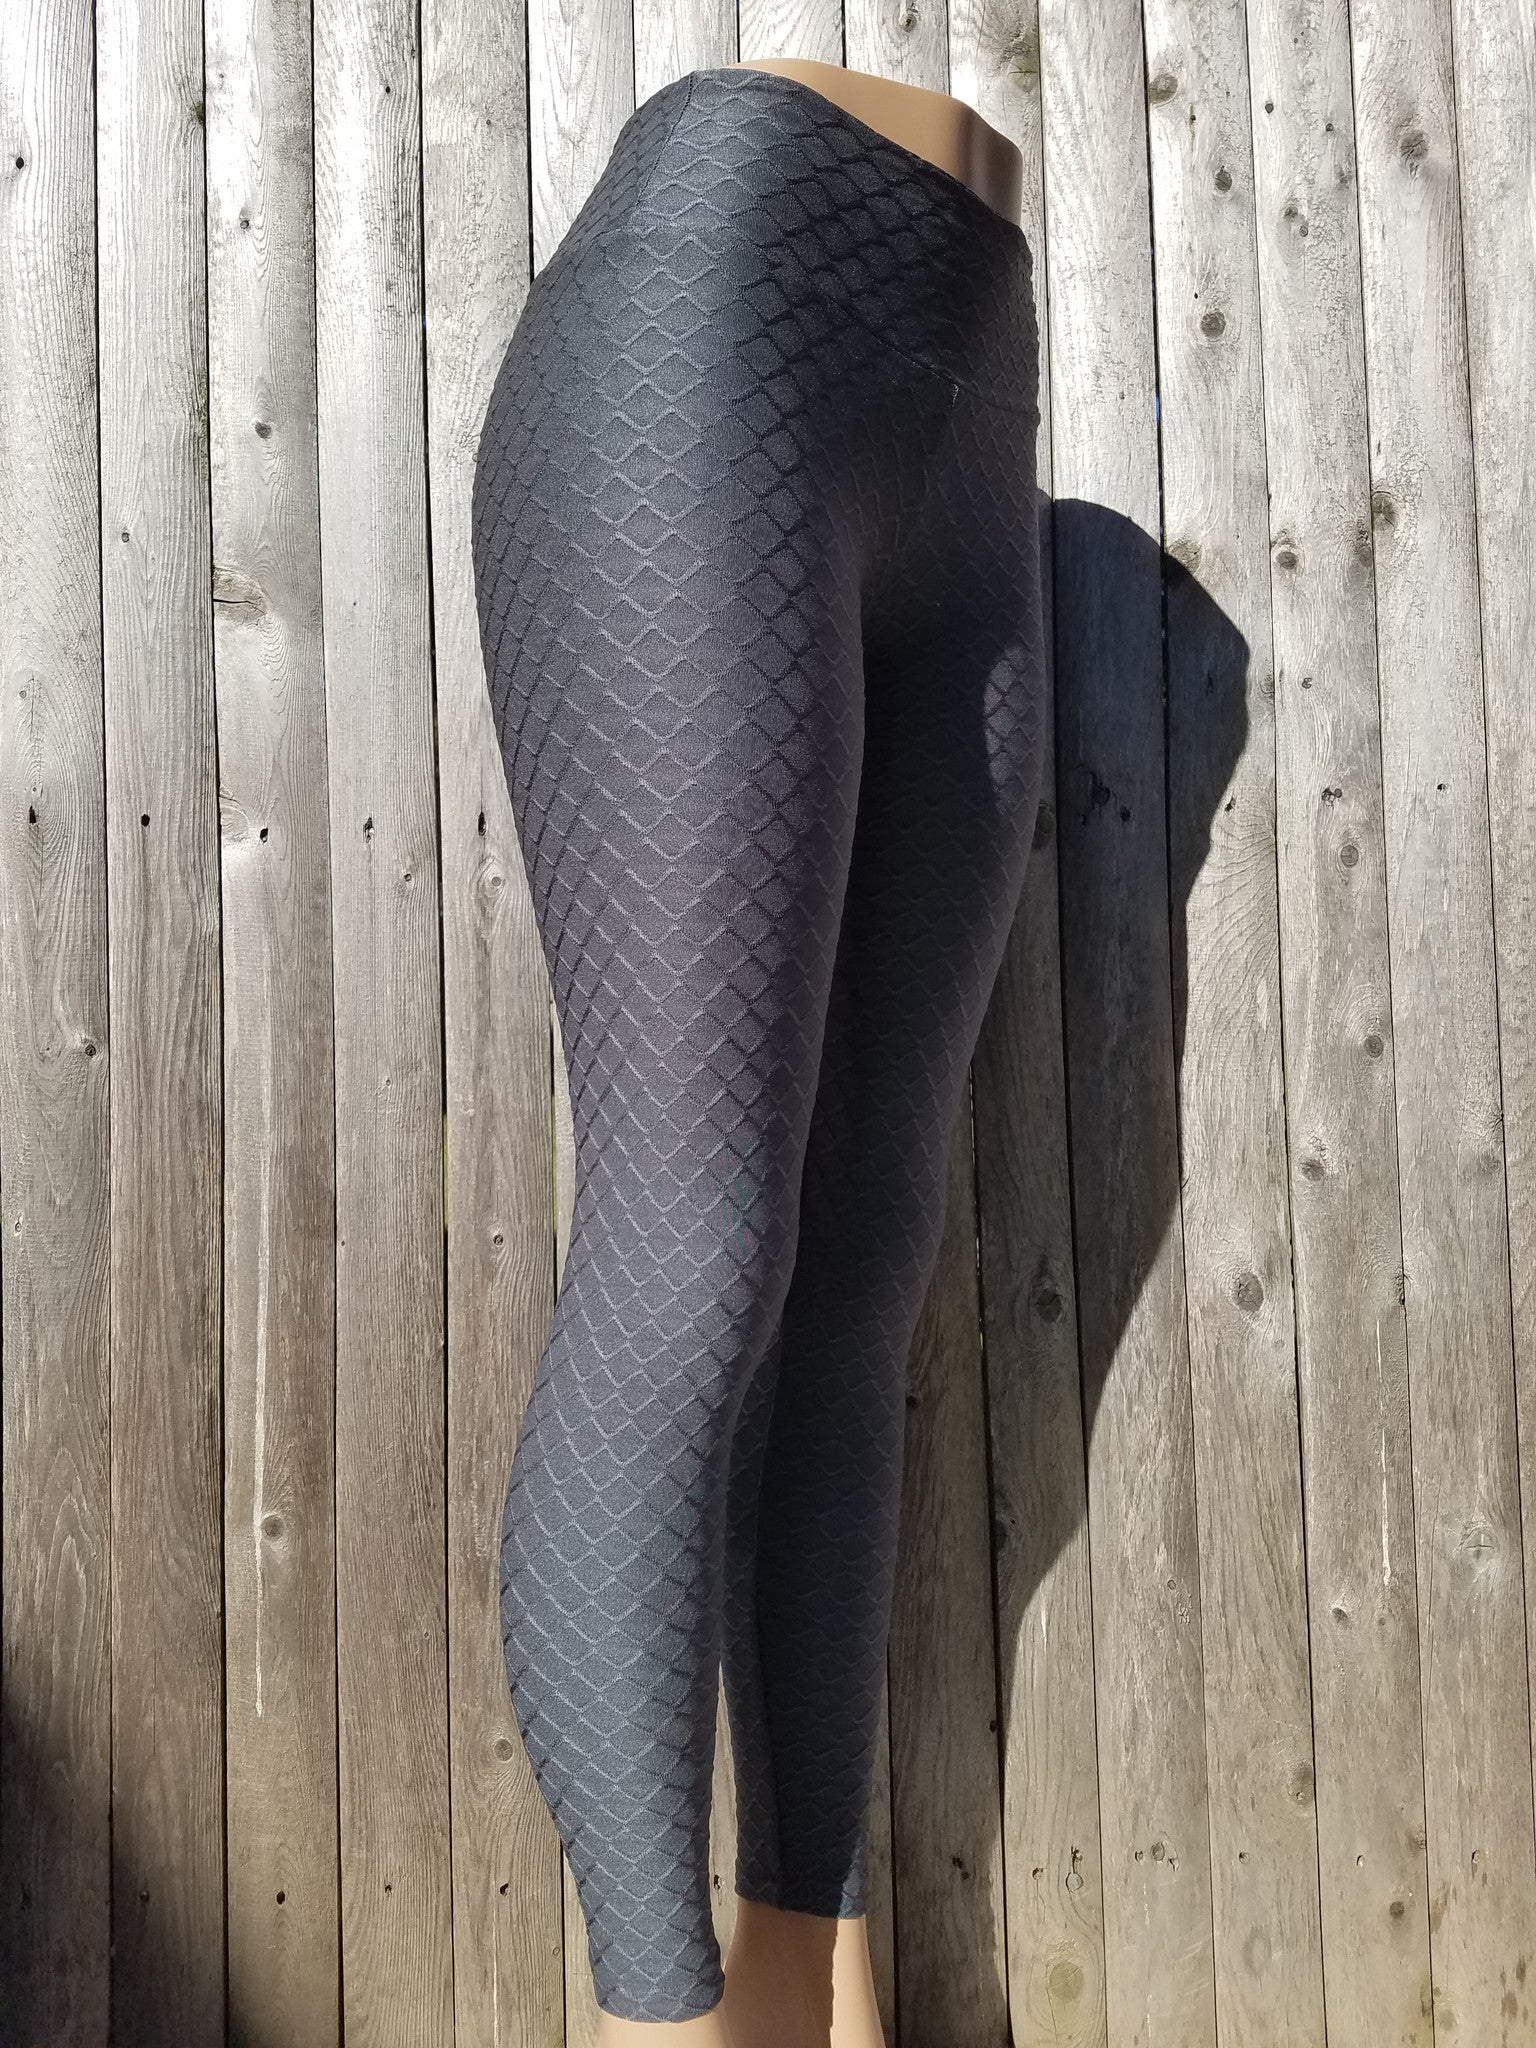 BURMESE GRAY - NYLeggings.com